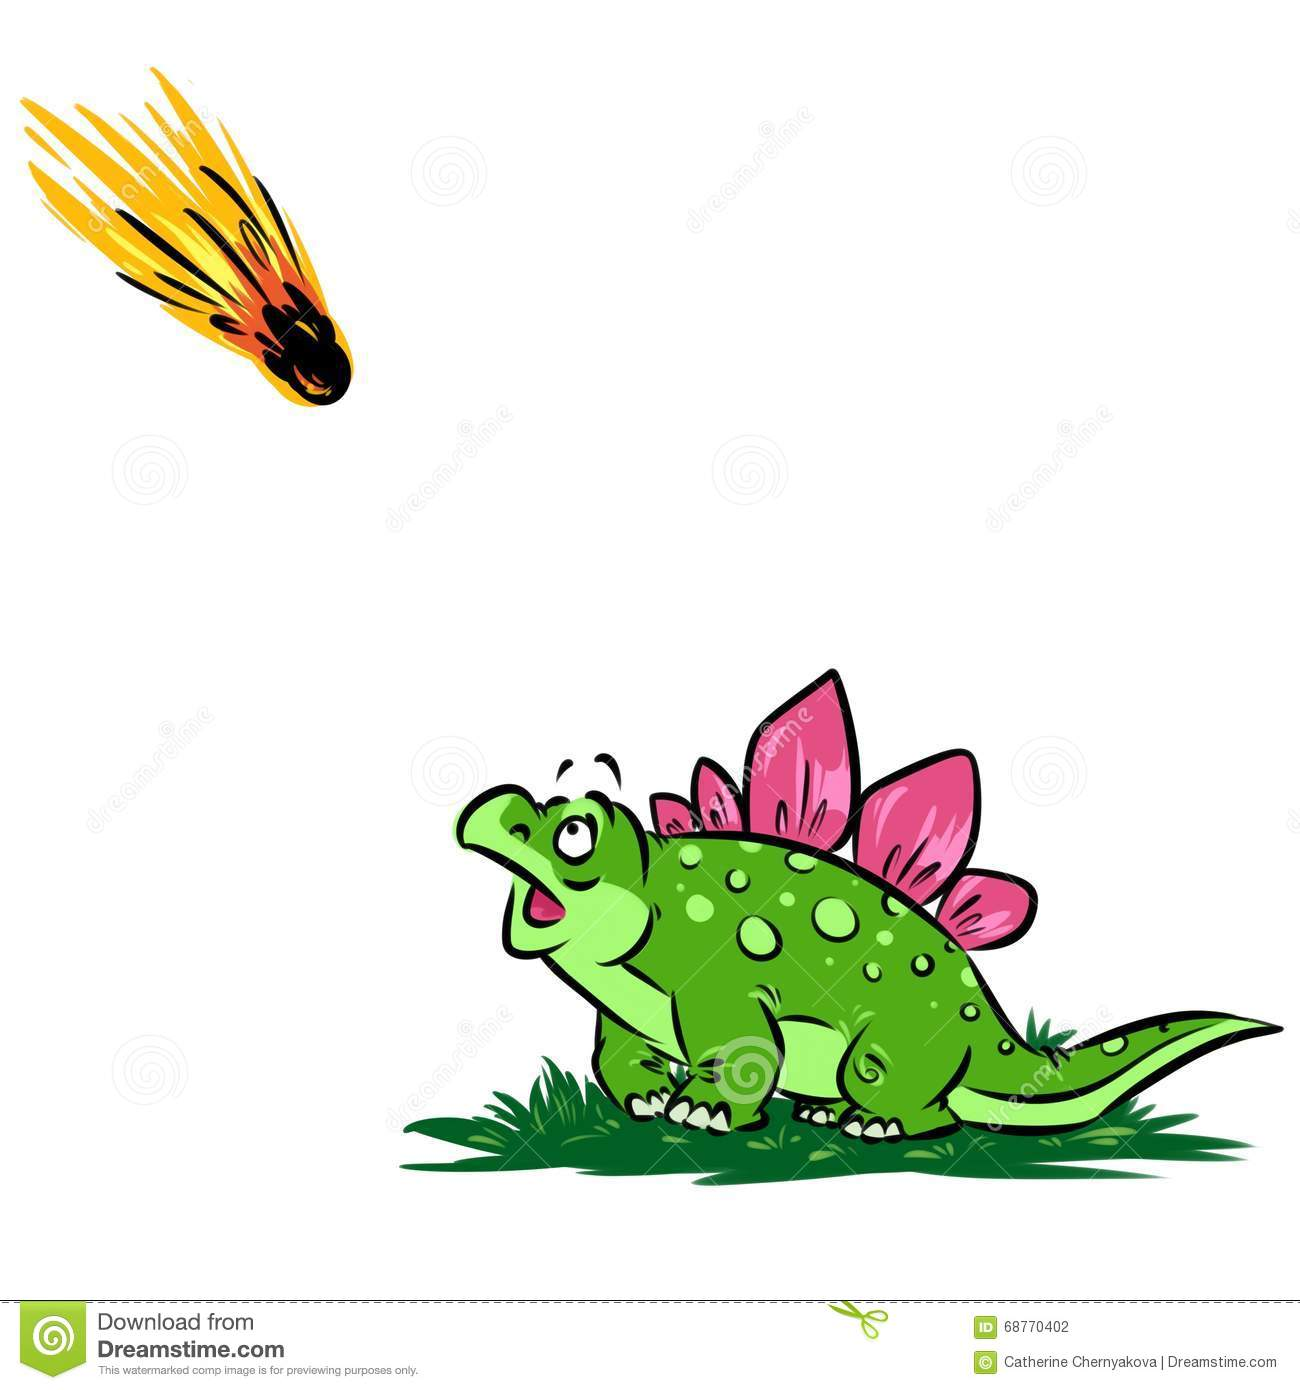 Dinosaur Hypothesis Meteorite Cartoon Illustration Stock ...